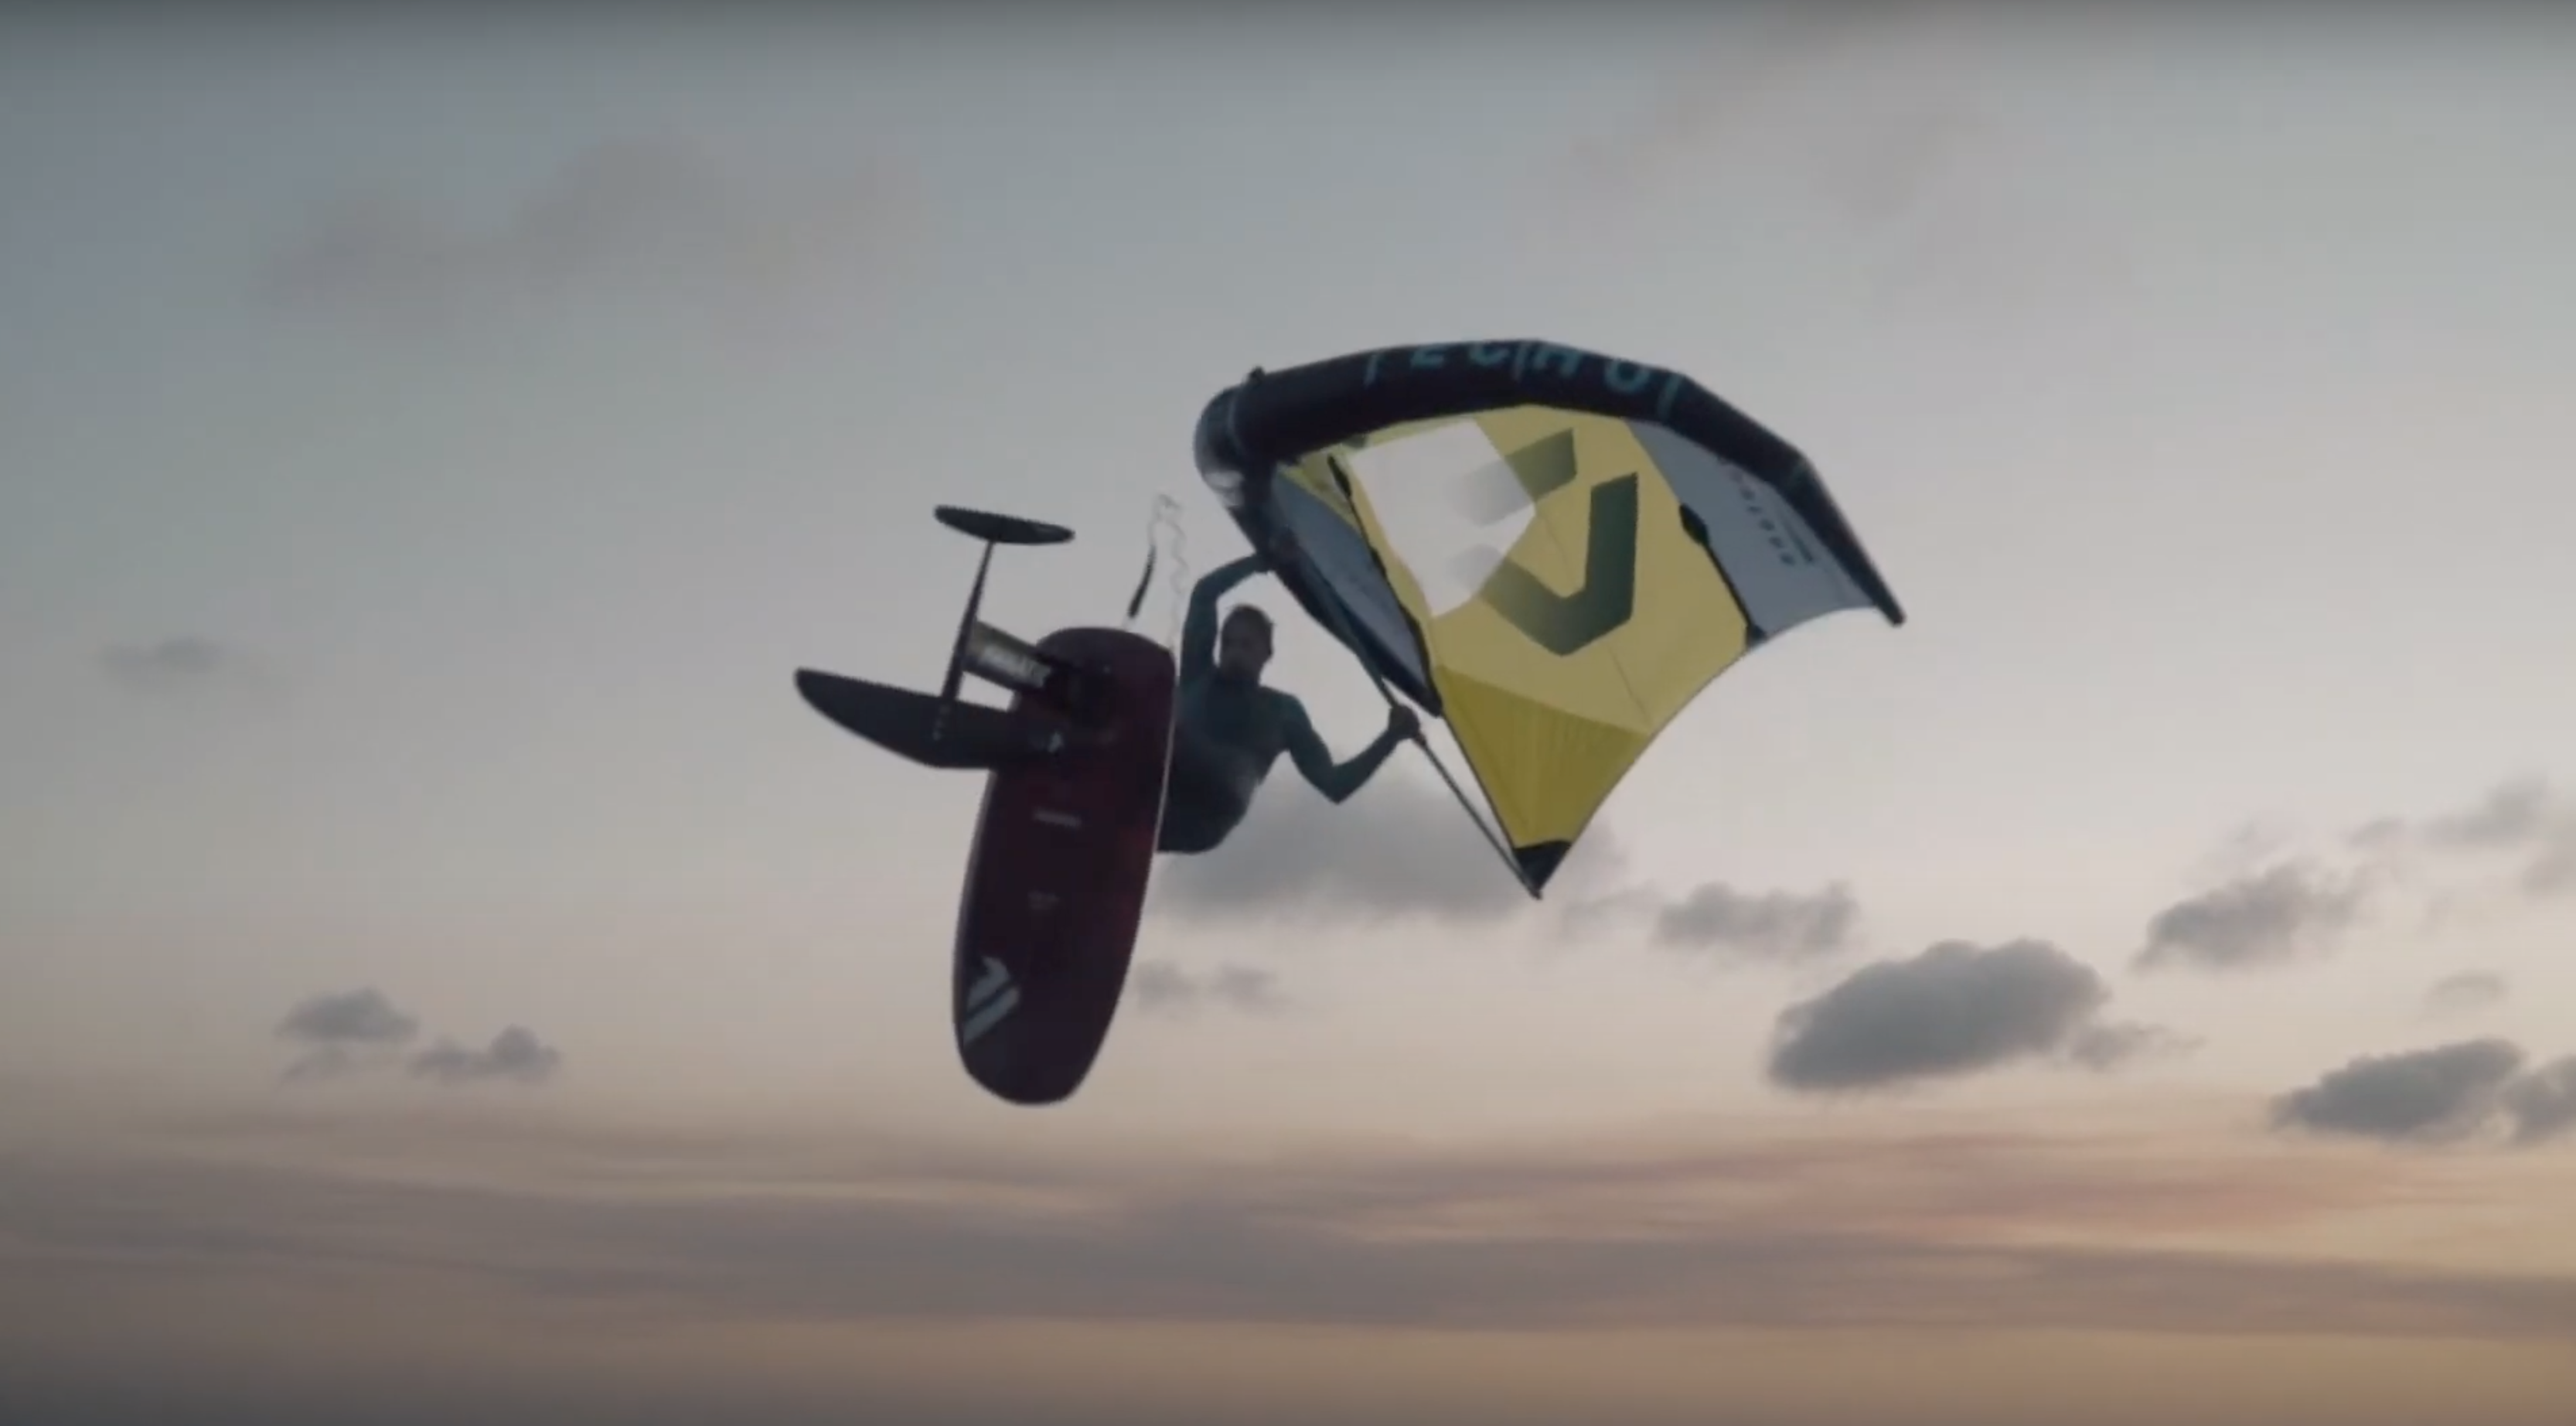 Tarifa Wing Foil Bye Summer 2020 Video